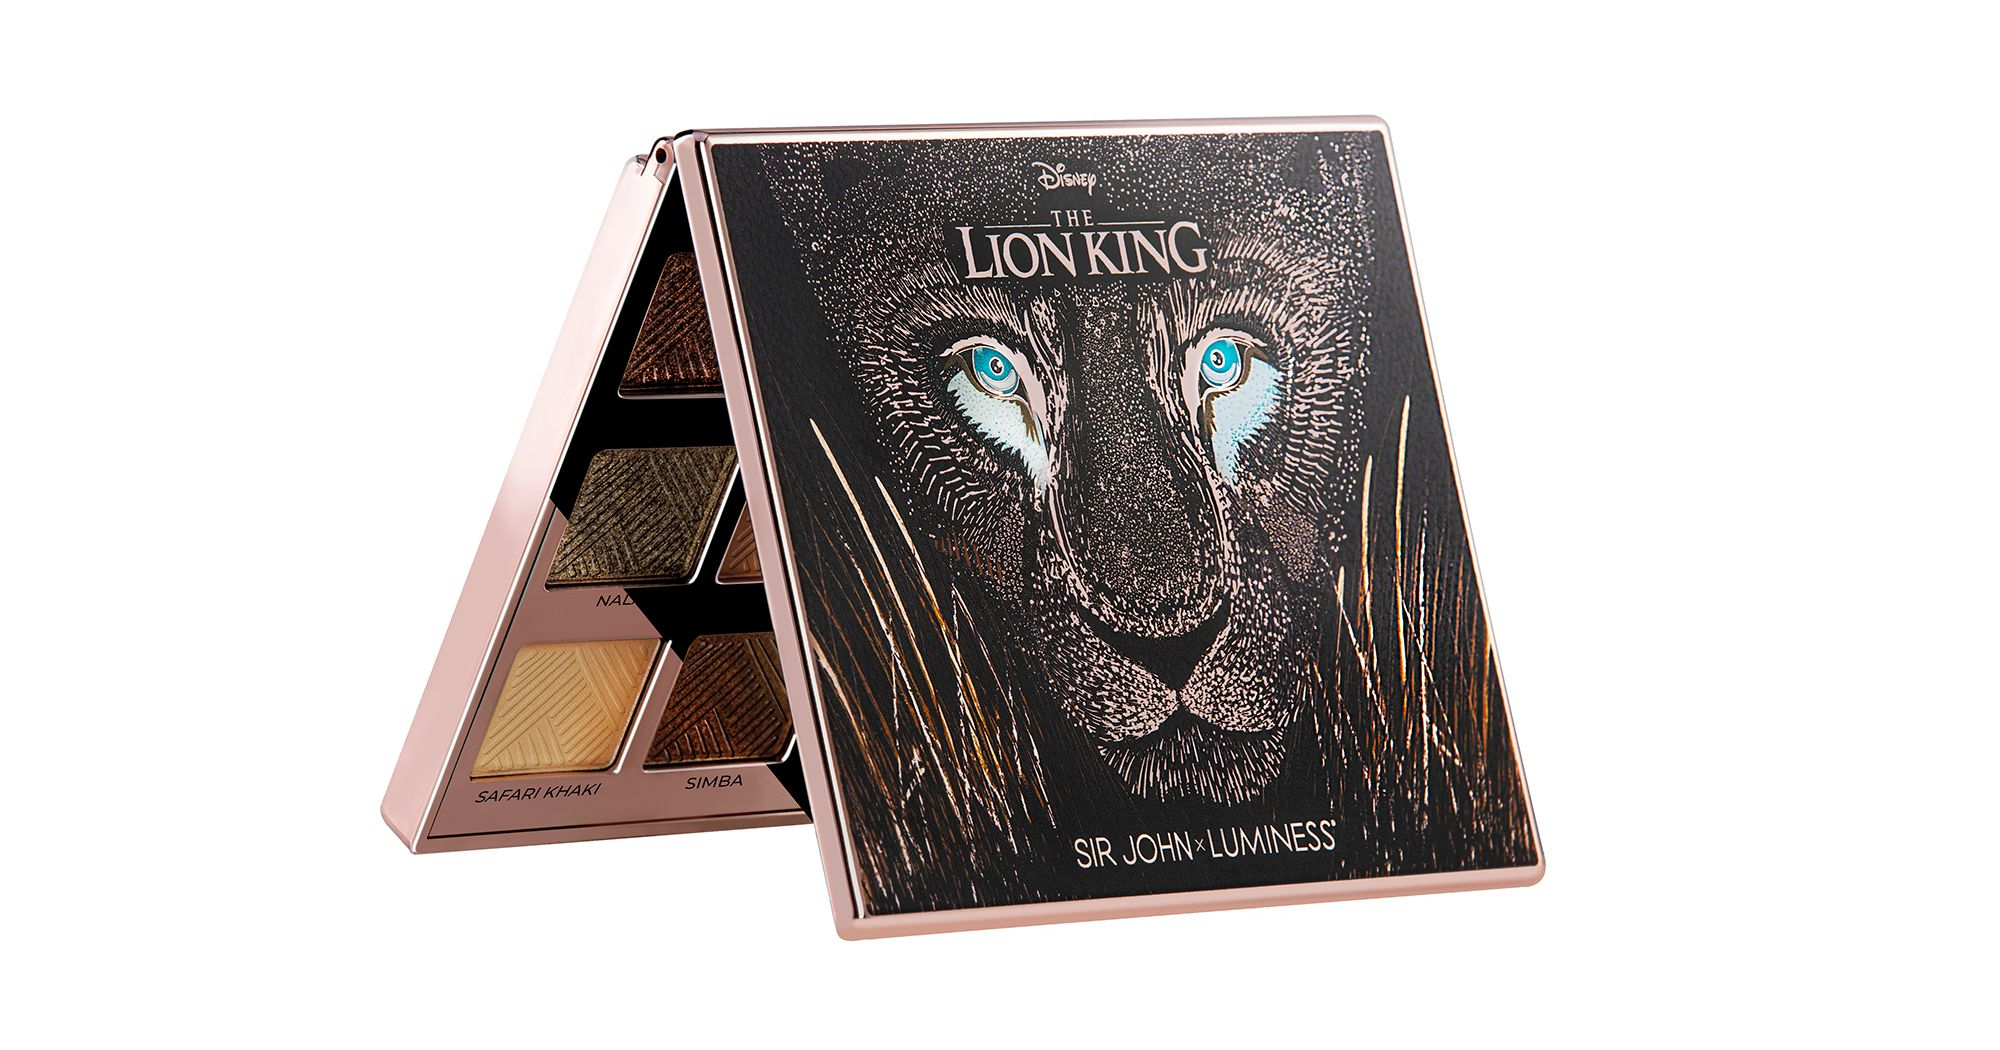 Lion King Makeup Collection